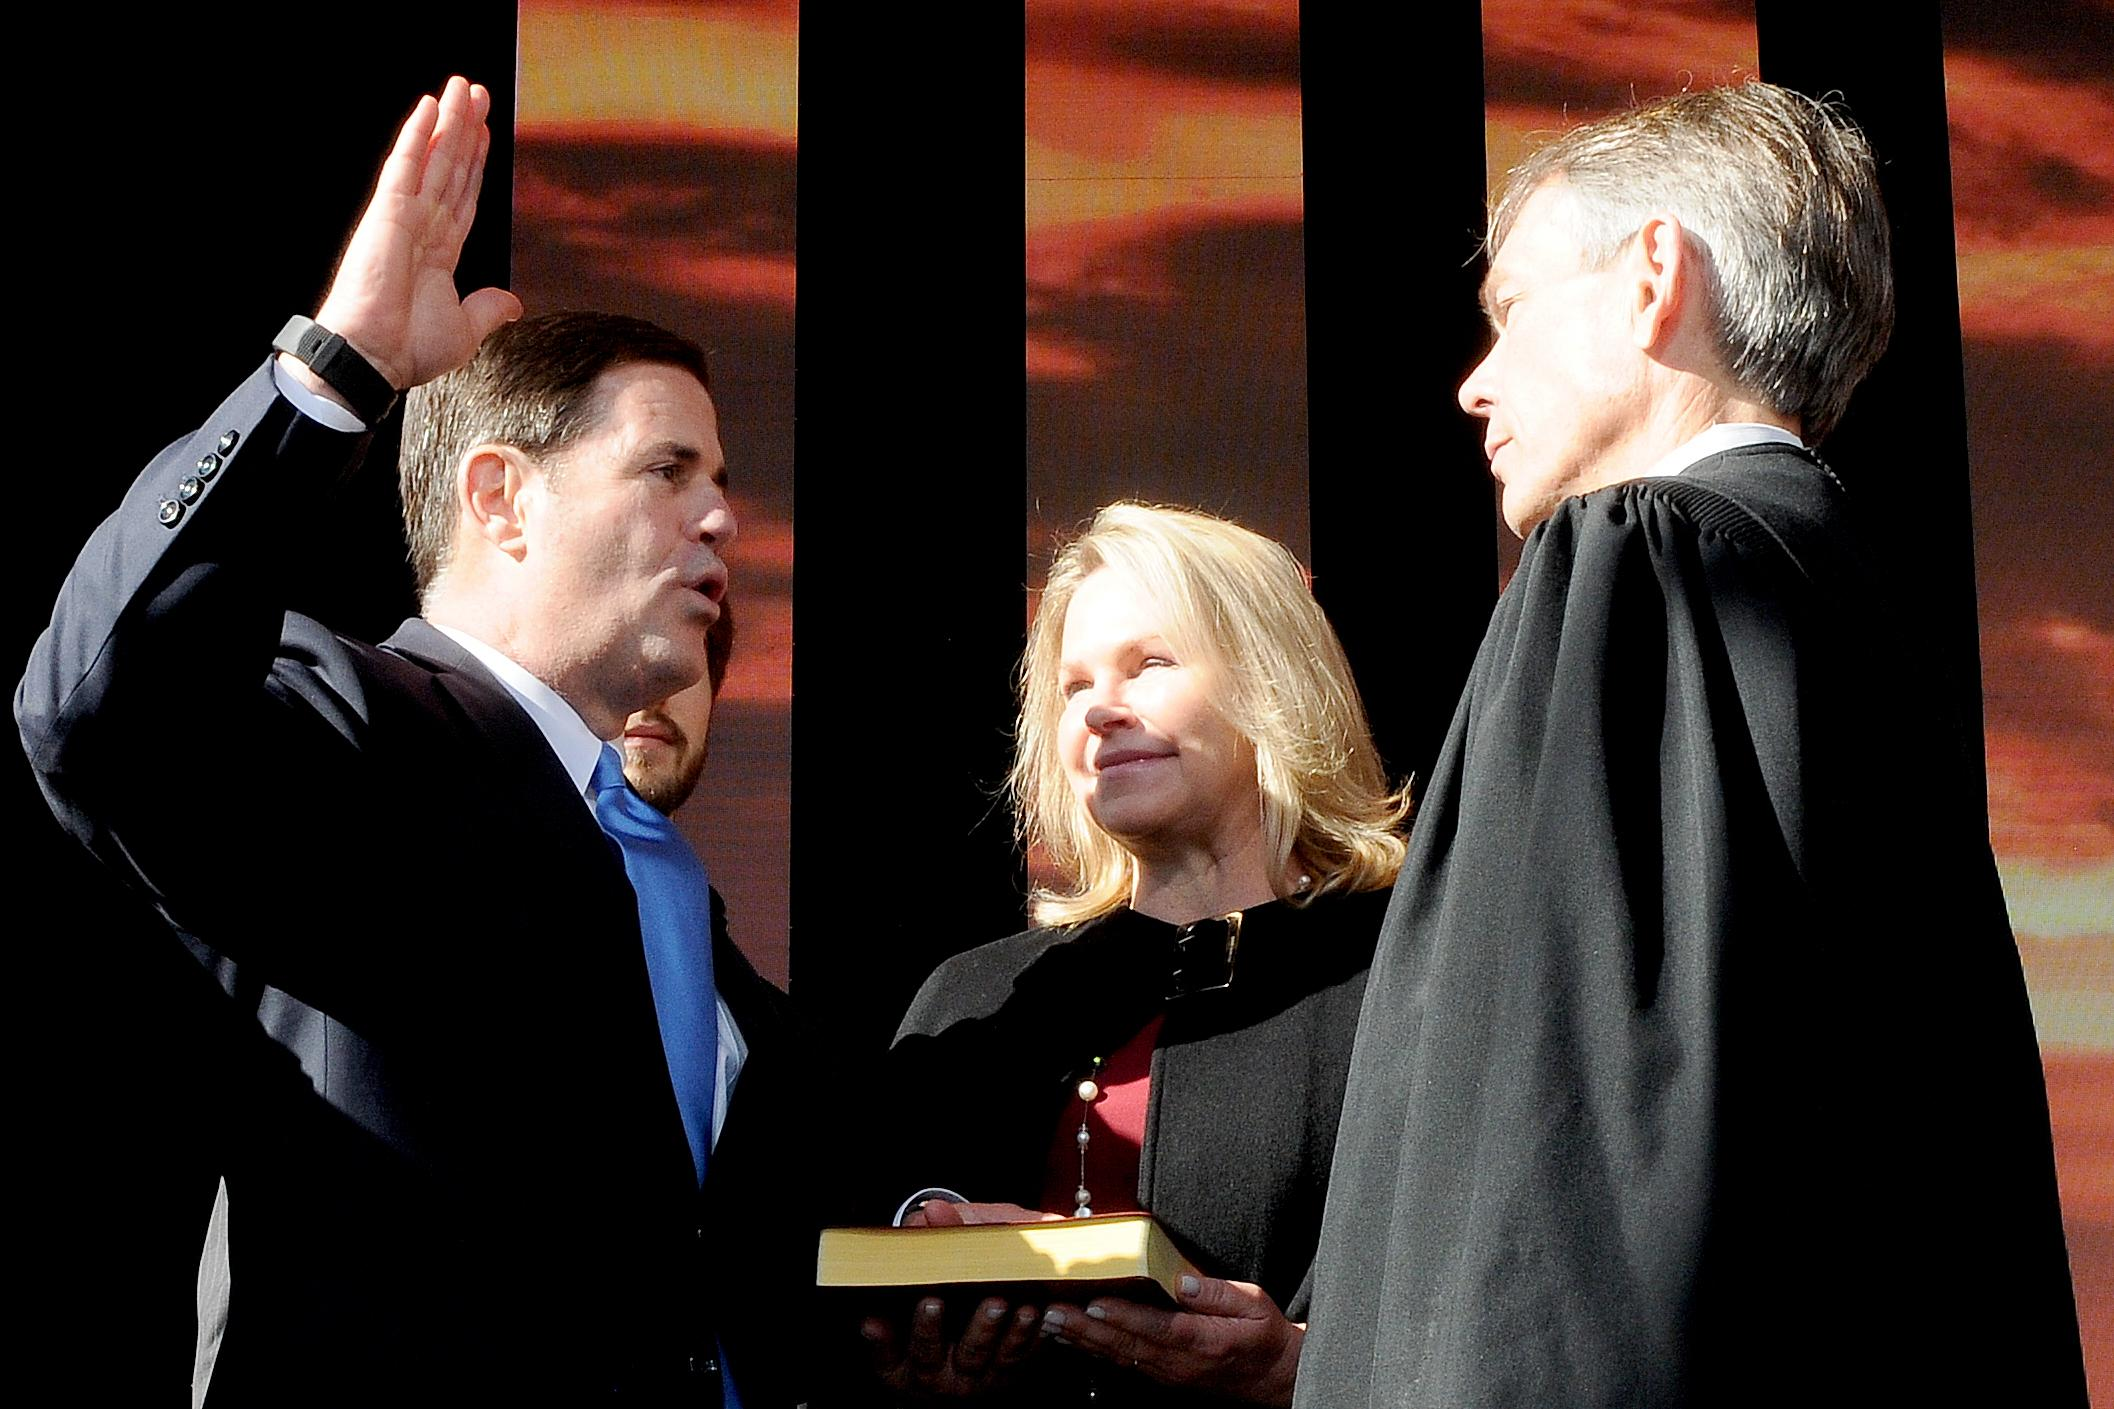 governor ducey being sworn in on inauguration day